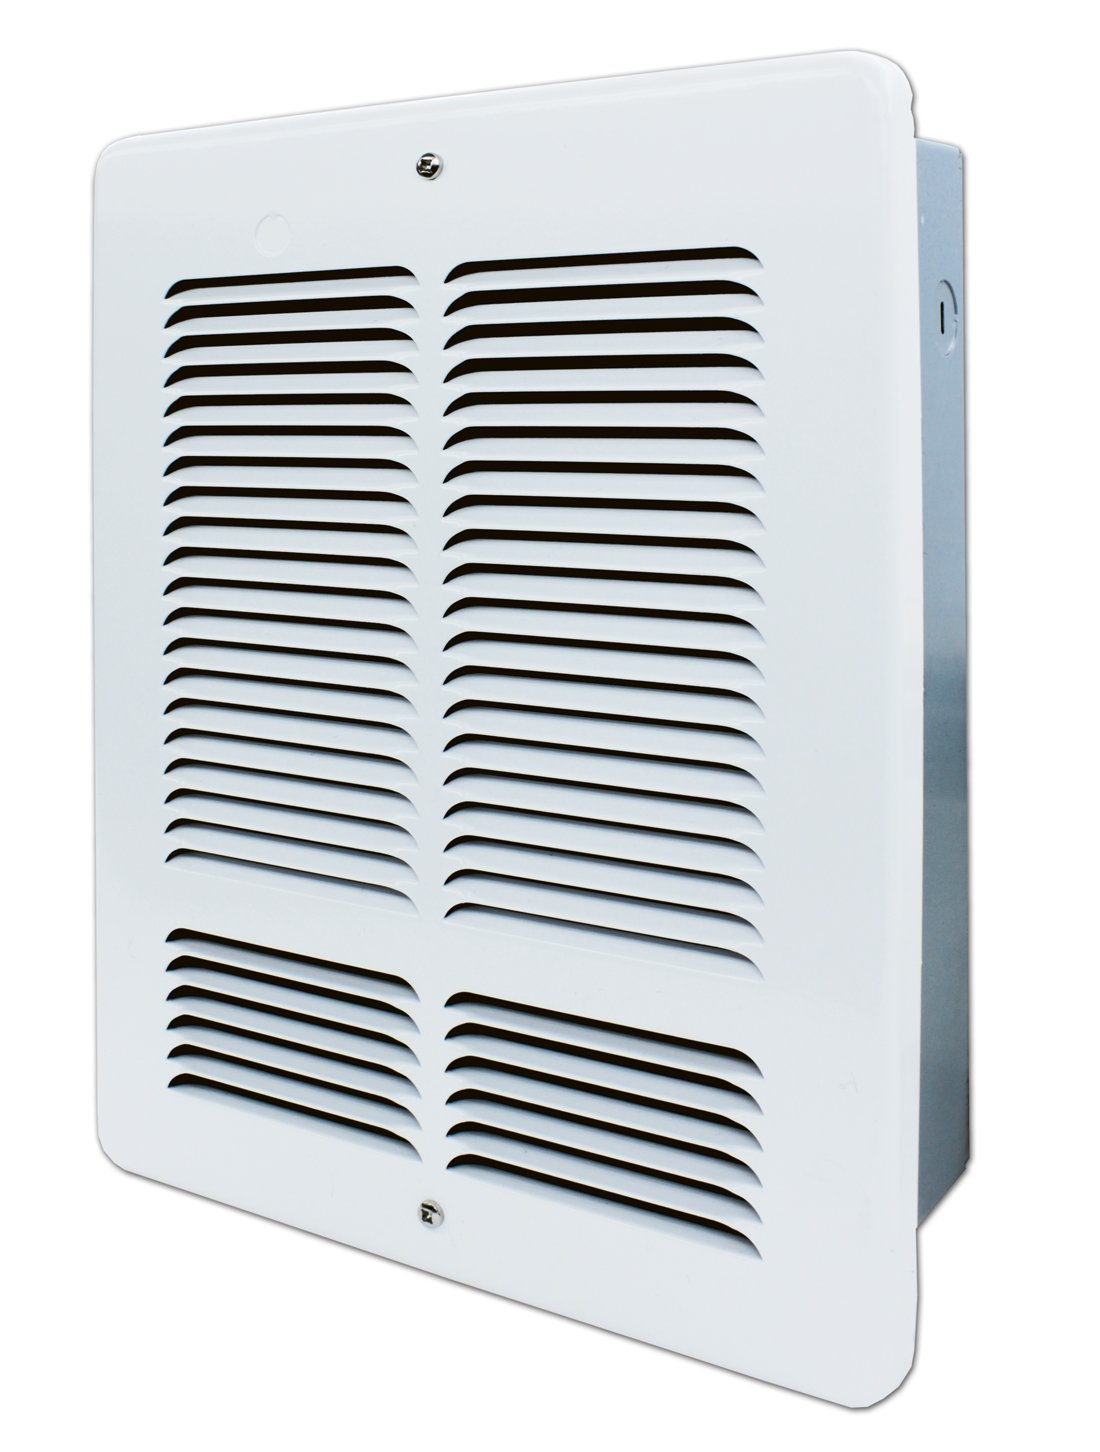 King Electric W2420 W Wall Heater 240 Volt White Floor Heating Wiring Baseboard Registers